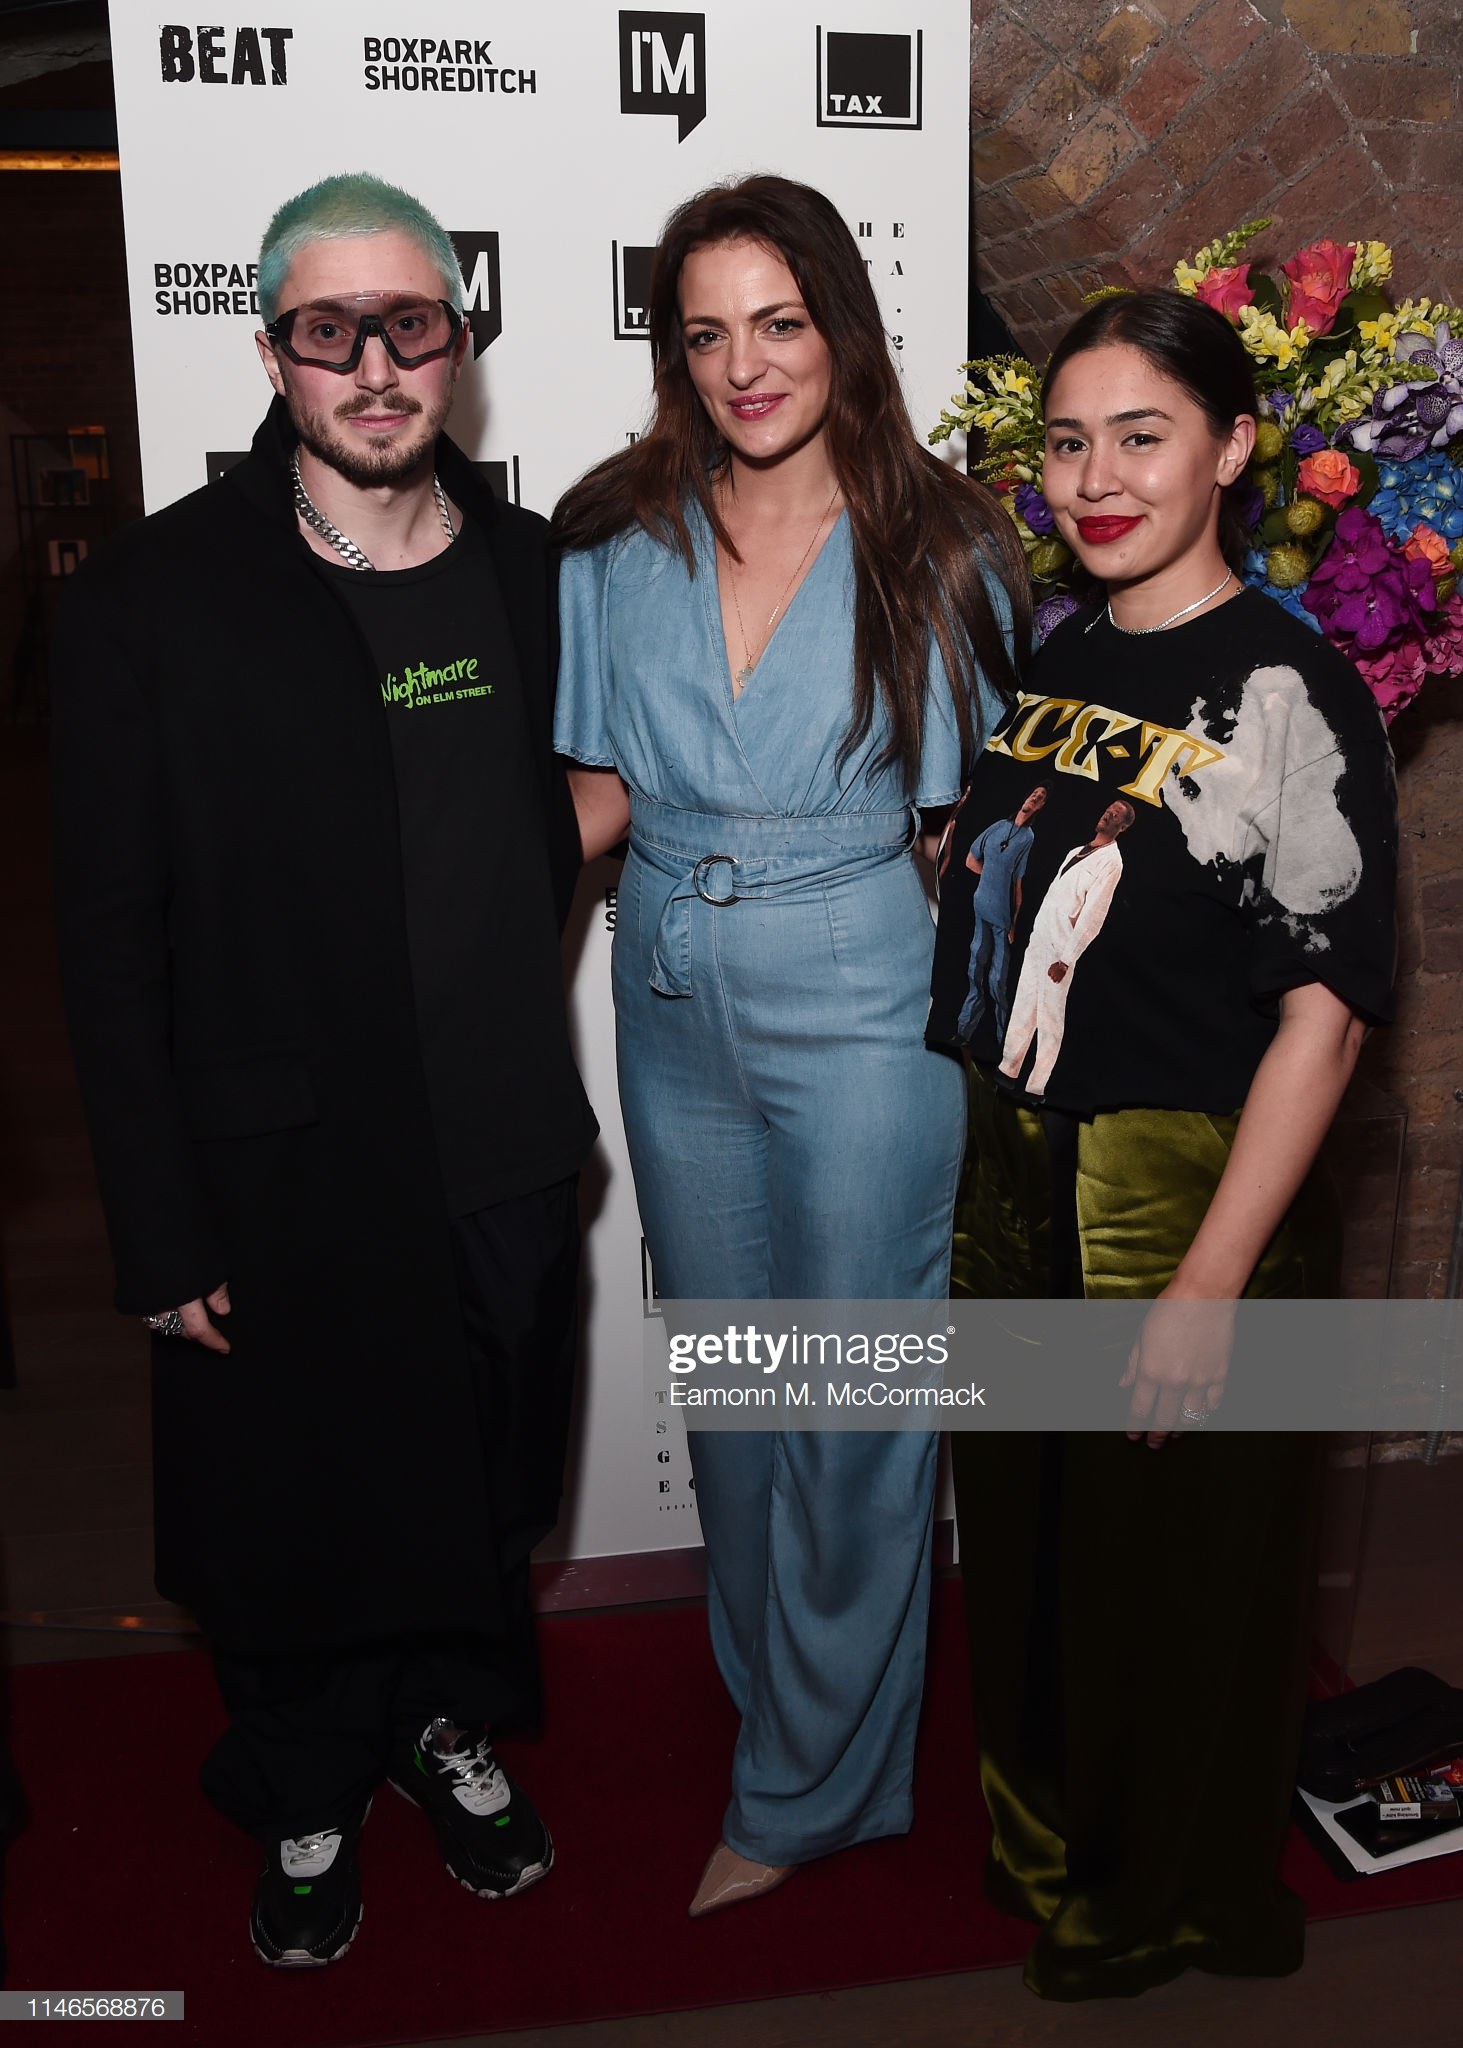 "LONDON, ENGLAND - MAY 02: Thomas Webb, Caroline Argirakos and Eve De Haan during ""Futurama"" exhibtion by the TAX Collection at Imitate Modern on May 02, 2019 in London, England. (Photo by Eamonn M. McCormack/Getty Images) LONDON, ENGLAND - MAY 02: Thomas Webb, Caroline Argirakos and Eve De Haan during ""Futurama"" exhibtion by the TAX Collection at Imitate Modern on May 02, 2019 in London, England. (Photo by Eamonn M. McCormack/Getty Images)"